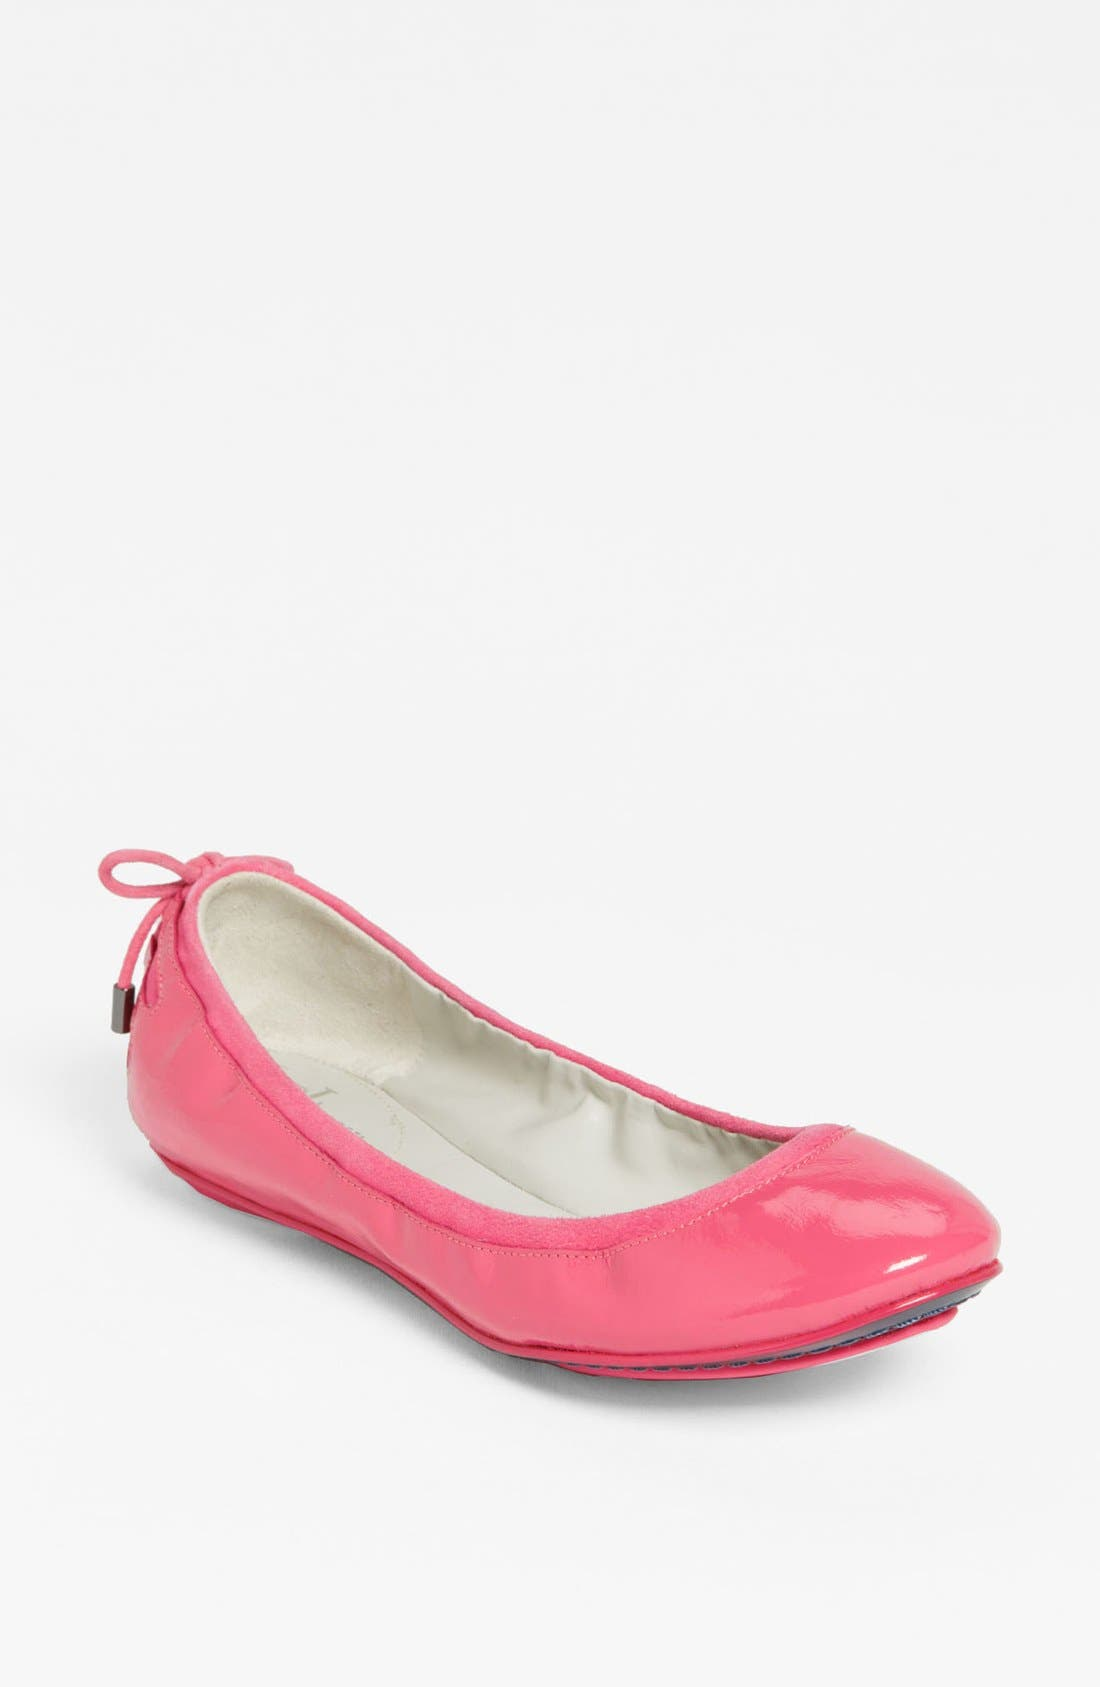 ,                             Maria Sharapova by Cole Haan 'Air Bacara' Flat,                             Main thumbnail 91, color,                             651